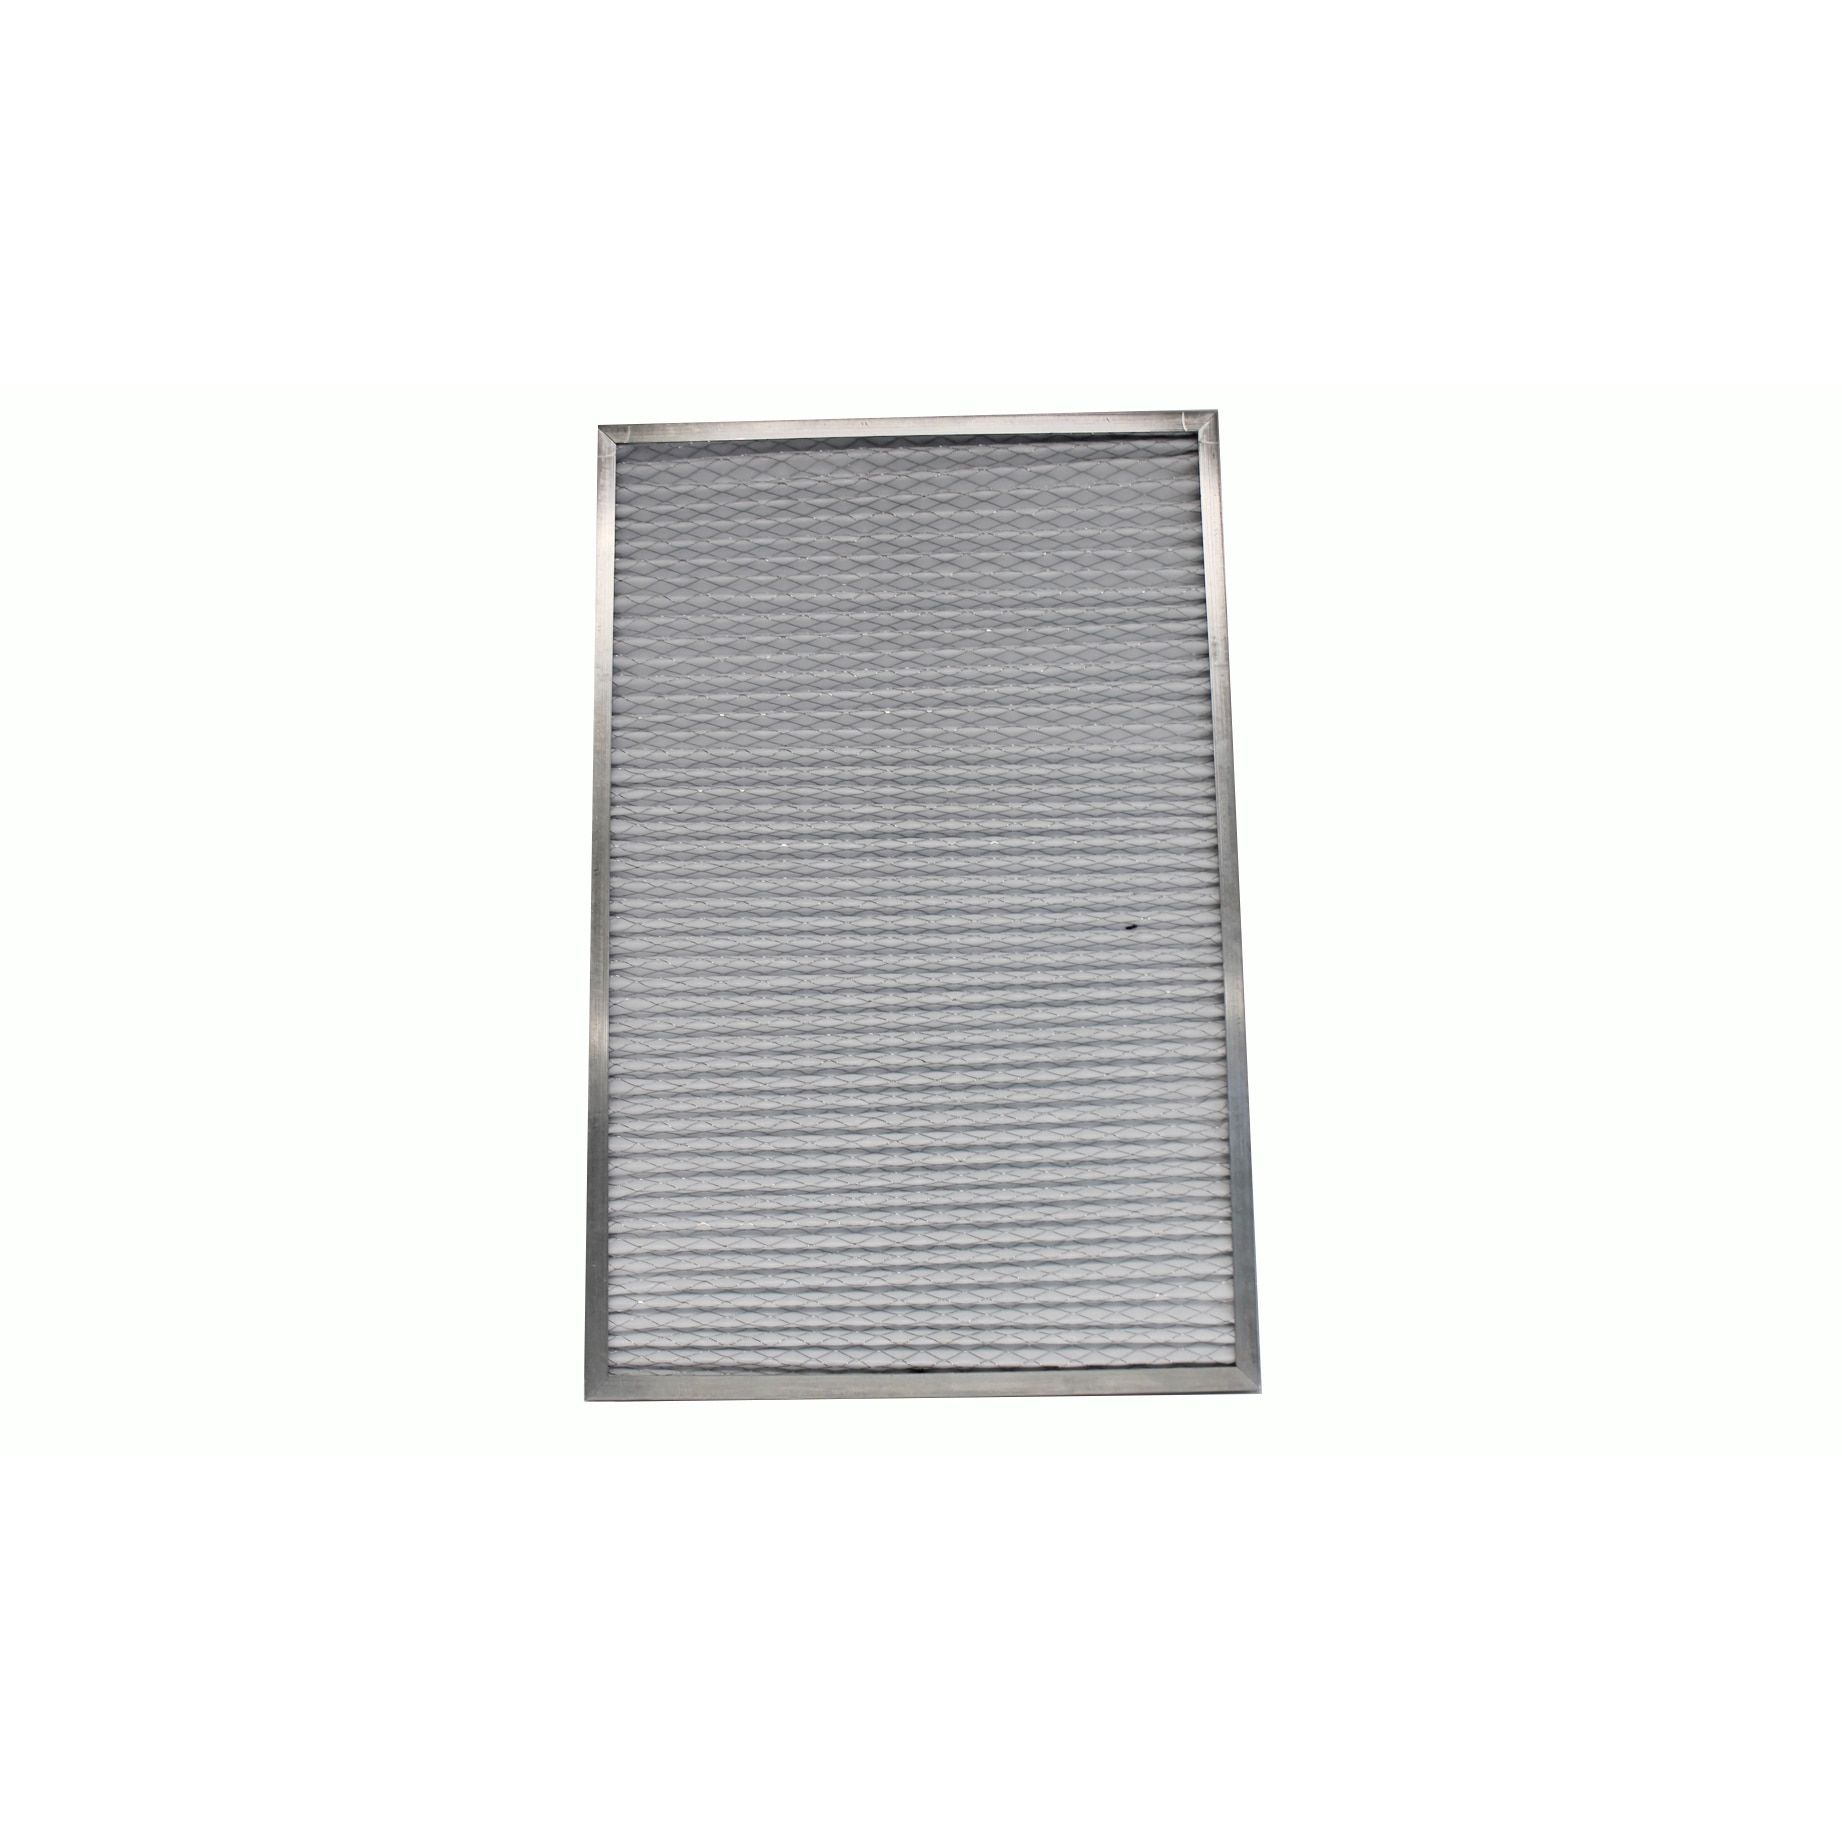 FilterBuy Replacement Media Pad Filter 16x25. Compatible